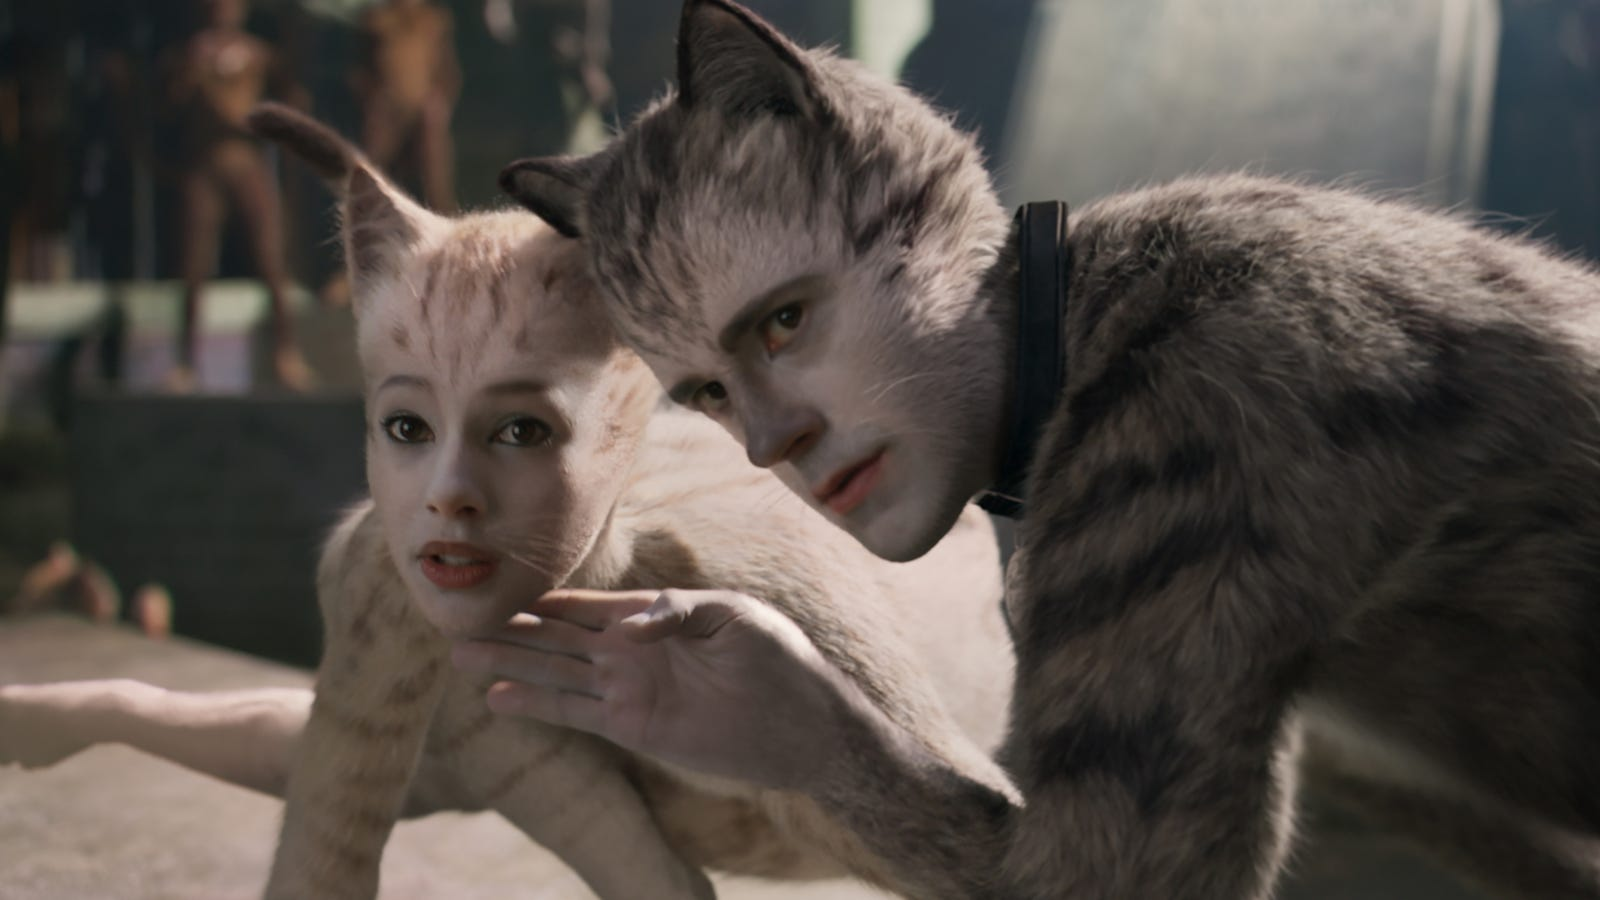 Yes, Cats is as bad as it looks